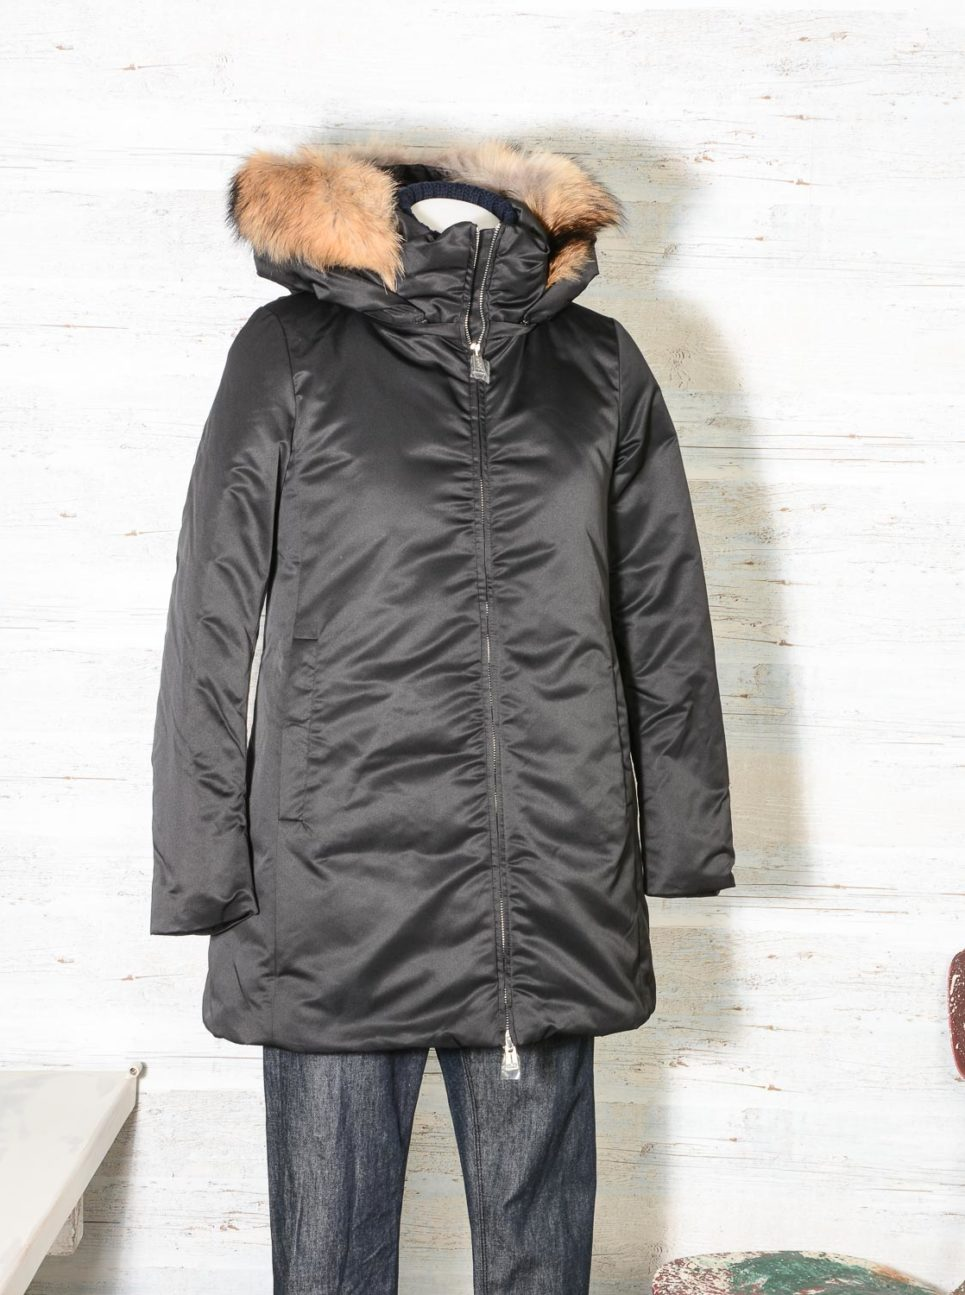 Parka Donna ADD nero KAW663 in piuma d'oca bordato in pelliccia -7